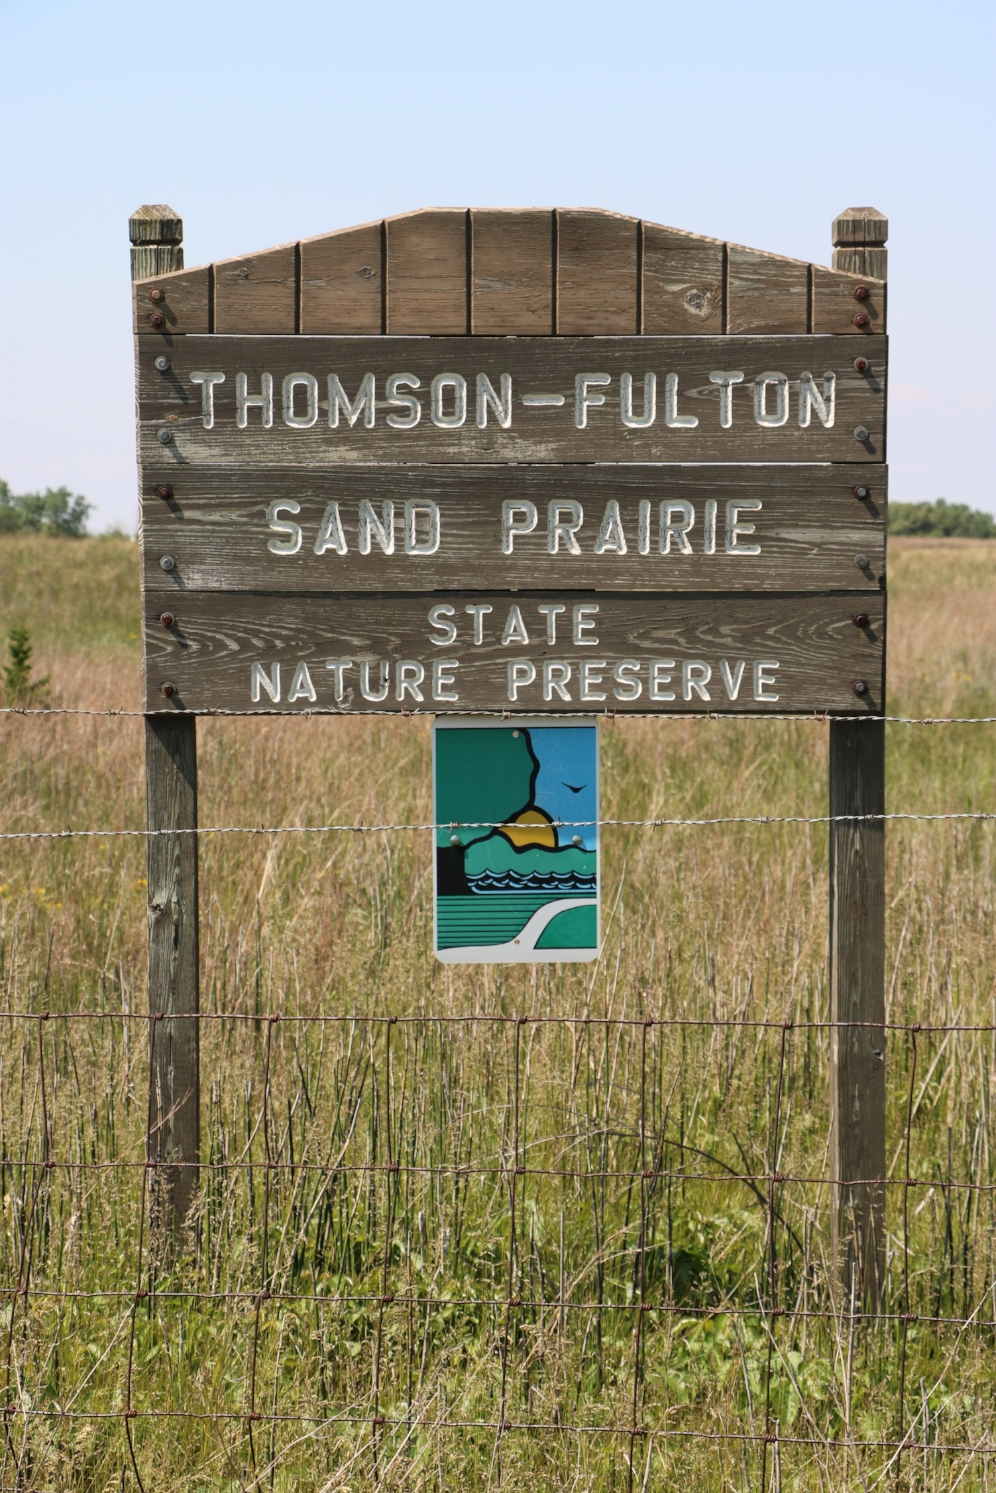 The Thomson-Fulton Sand Prairie State Nature Preserve (Whiteside County, Illinois) is owned and managed by the Illinois Department of Natural Resources. Photograph by George L. Heinrich.